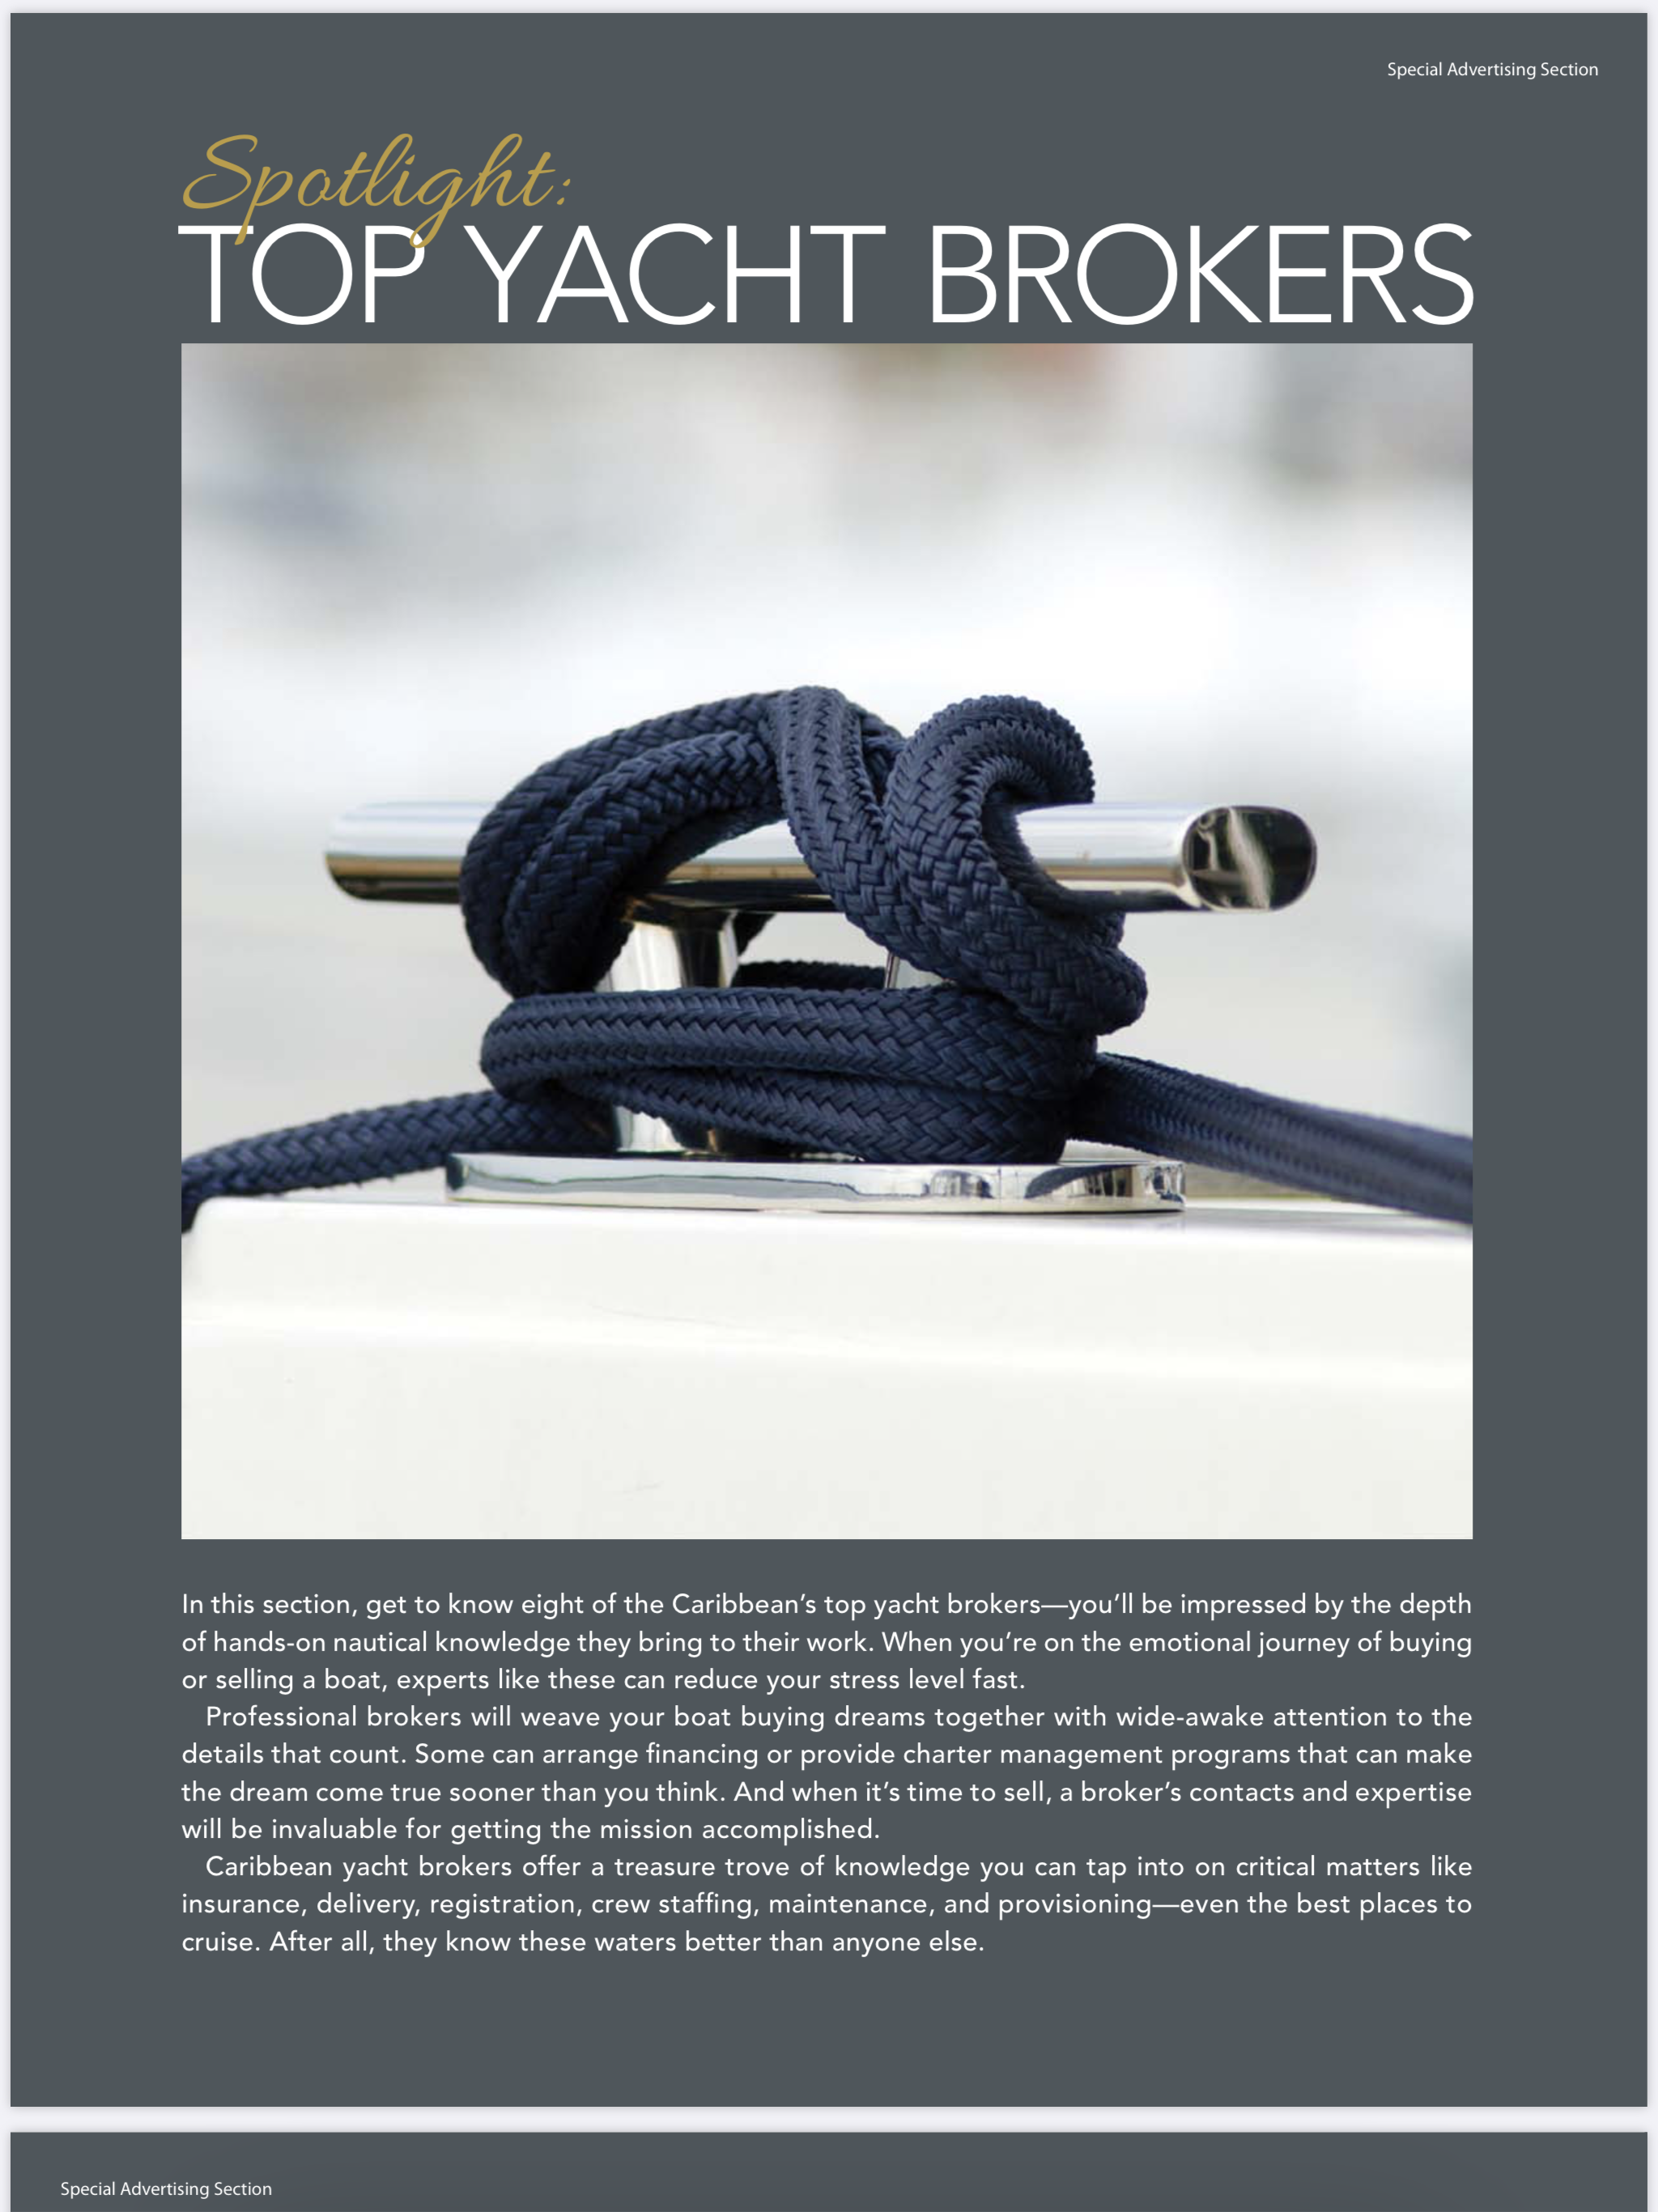 All At Sea - Top Yacht Brokers Special 2019